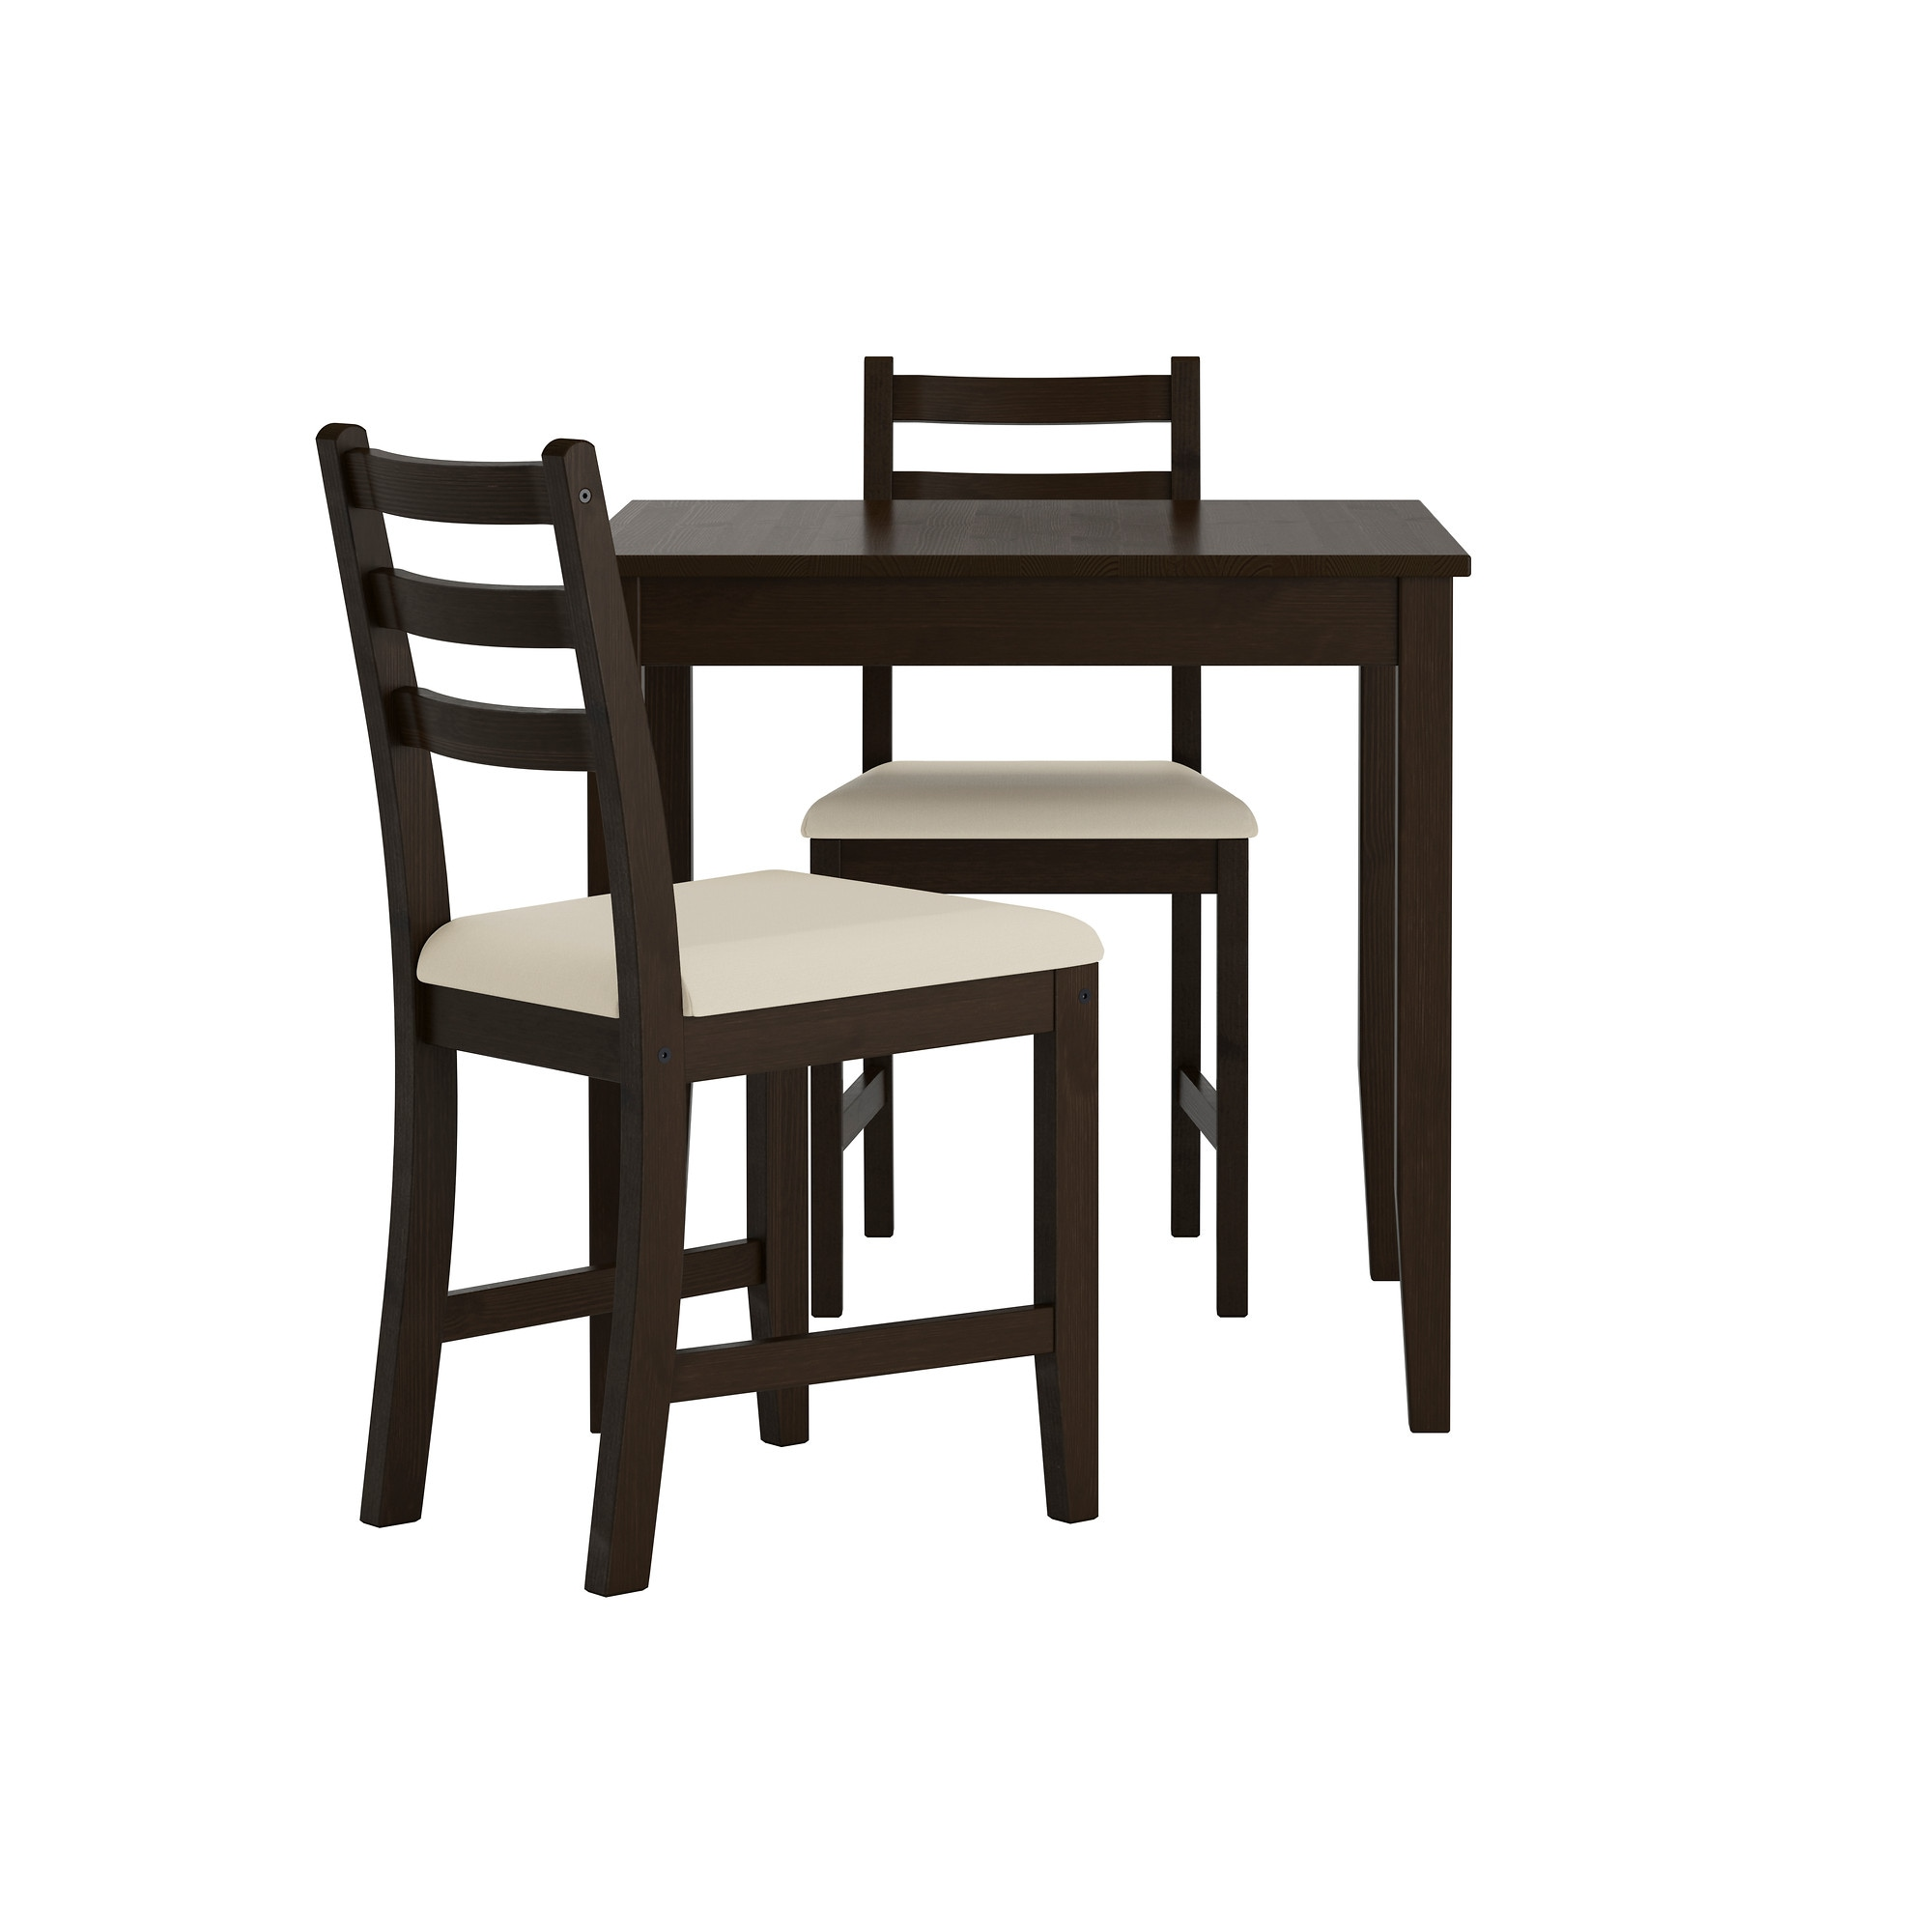 two seat kitchen table LERHAMN table and 2 chairs black brown Vittaryd beige Length 29 1